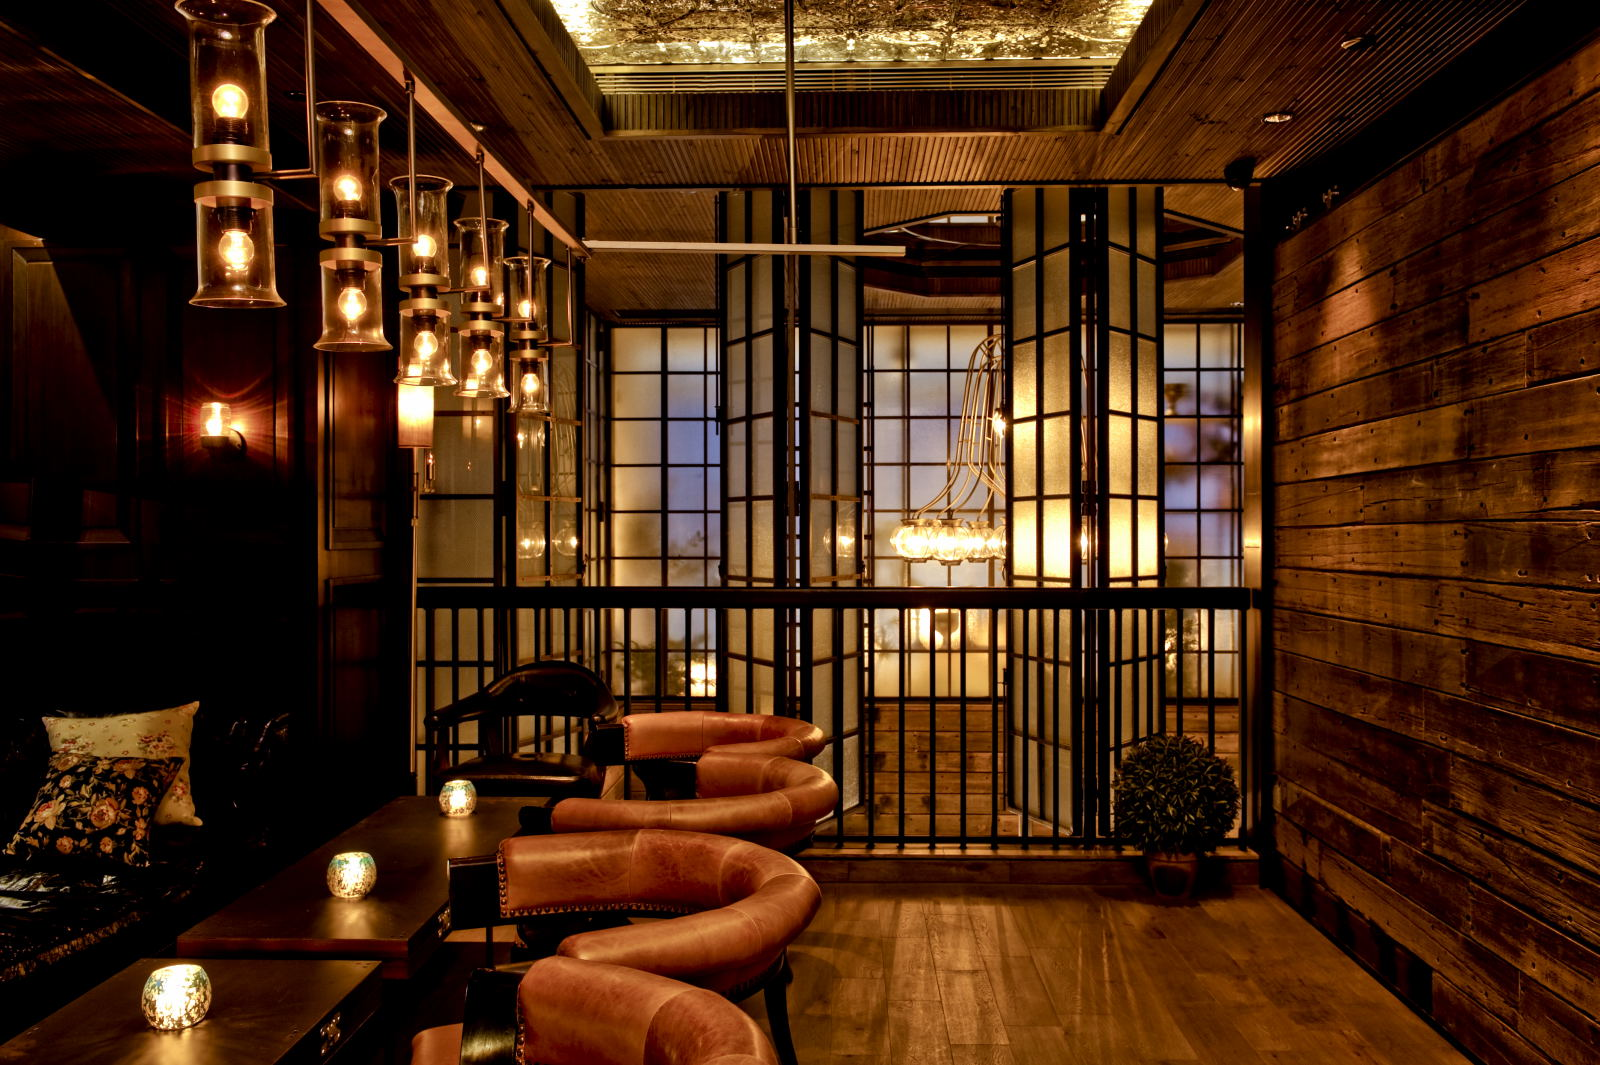 Restaurant Bar Wall Decor : Lily celebrated bar room in central hong kong recalls